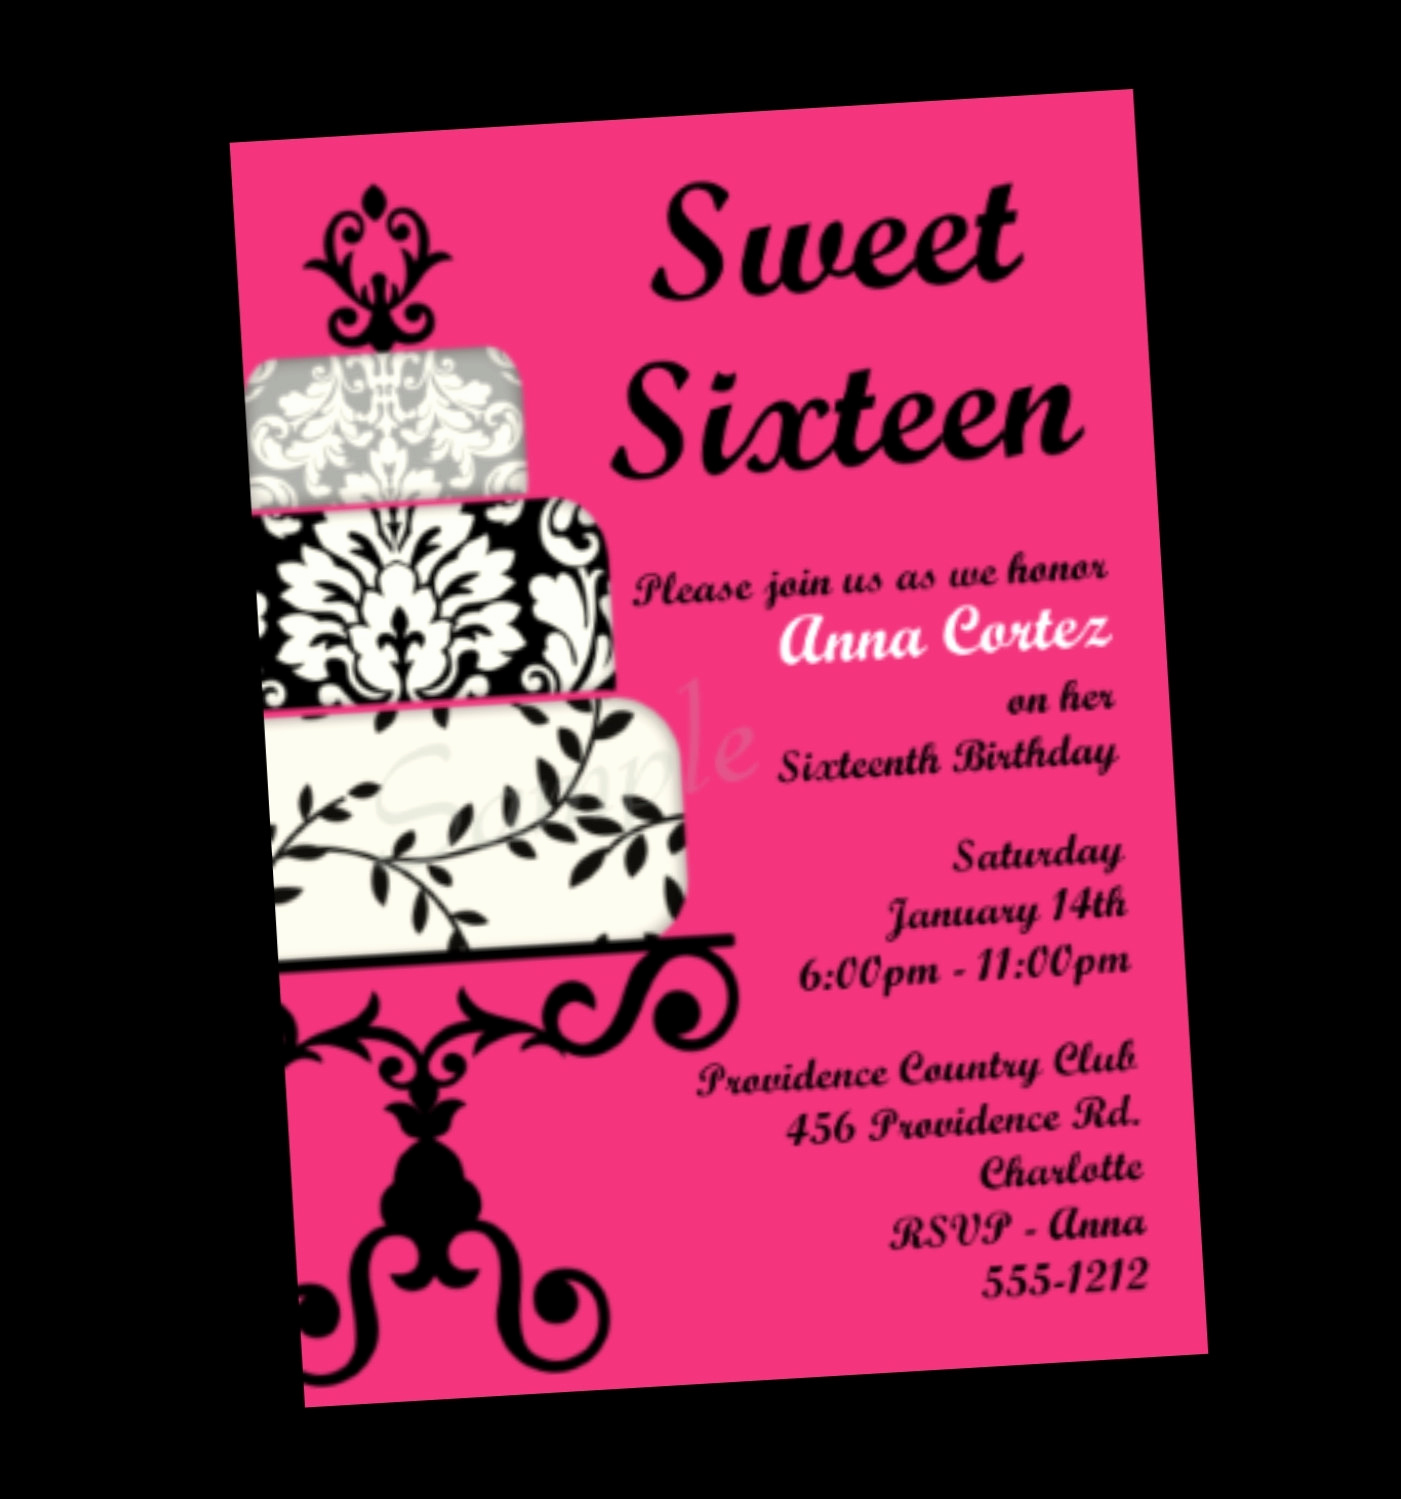 Sweet Sixteen Invitation Templates Lovely Sweet 16 Invitation Quotes Quotesgram